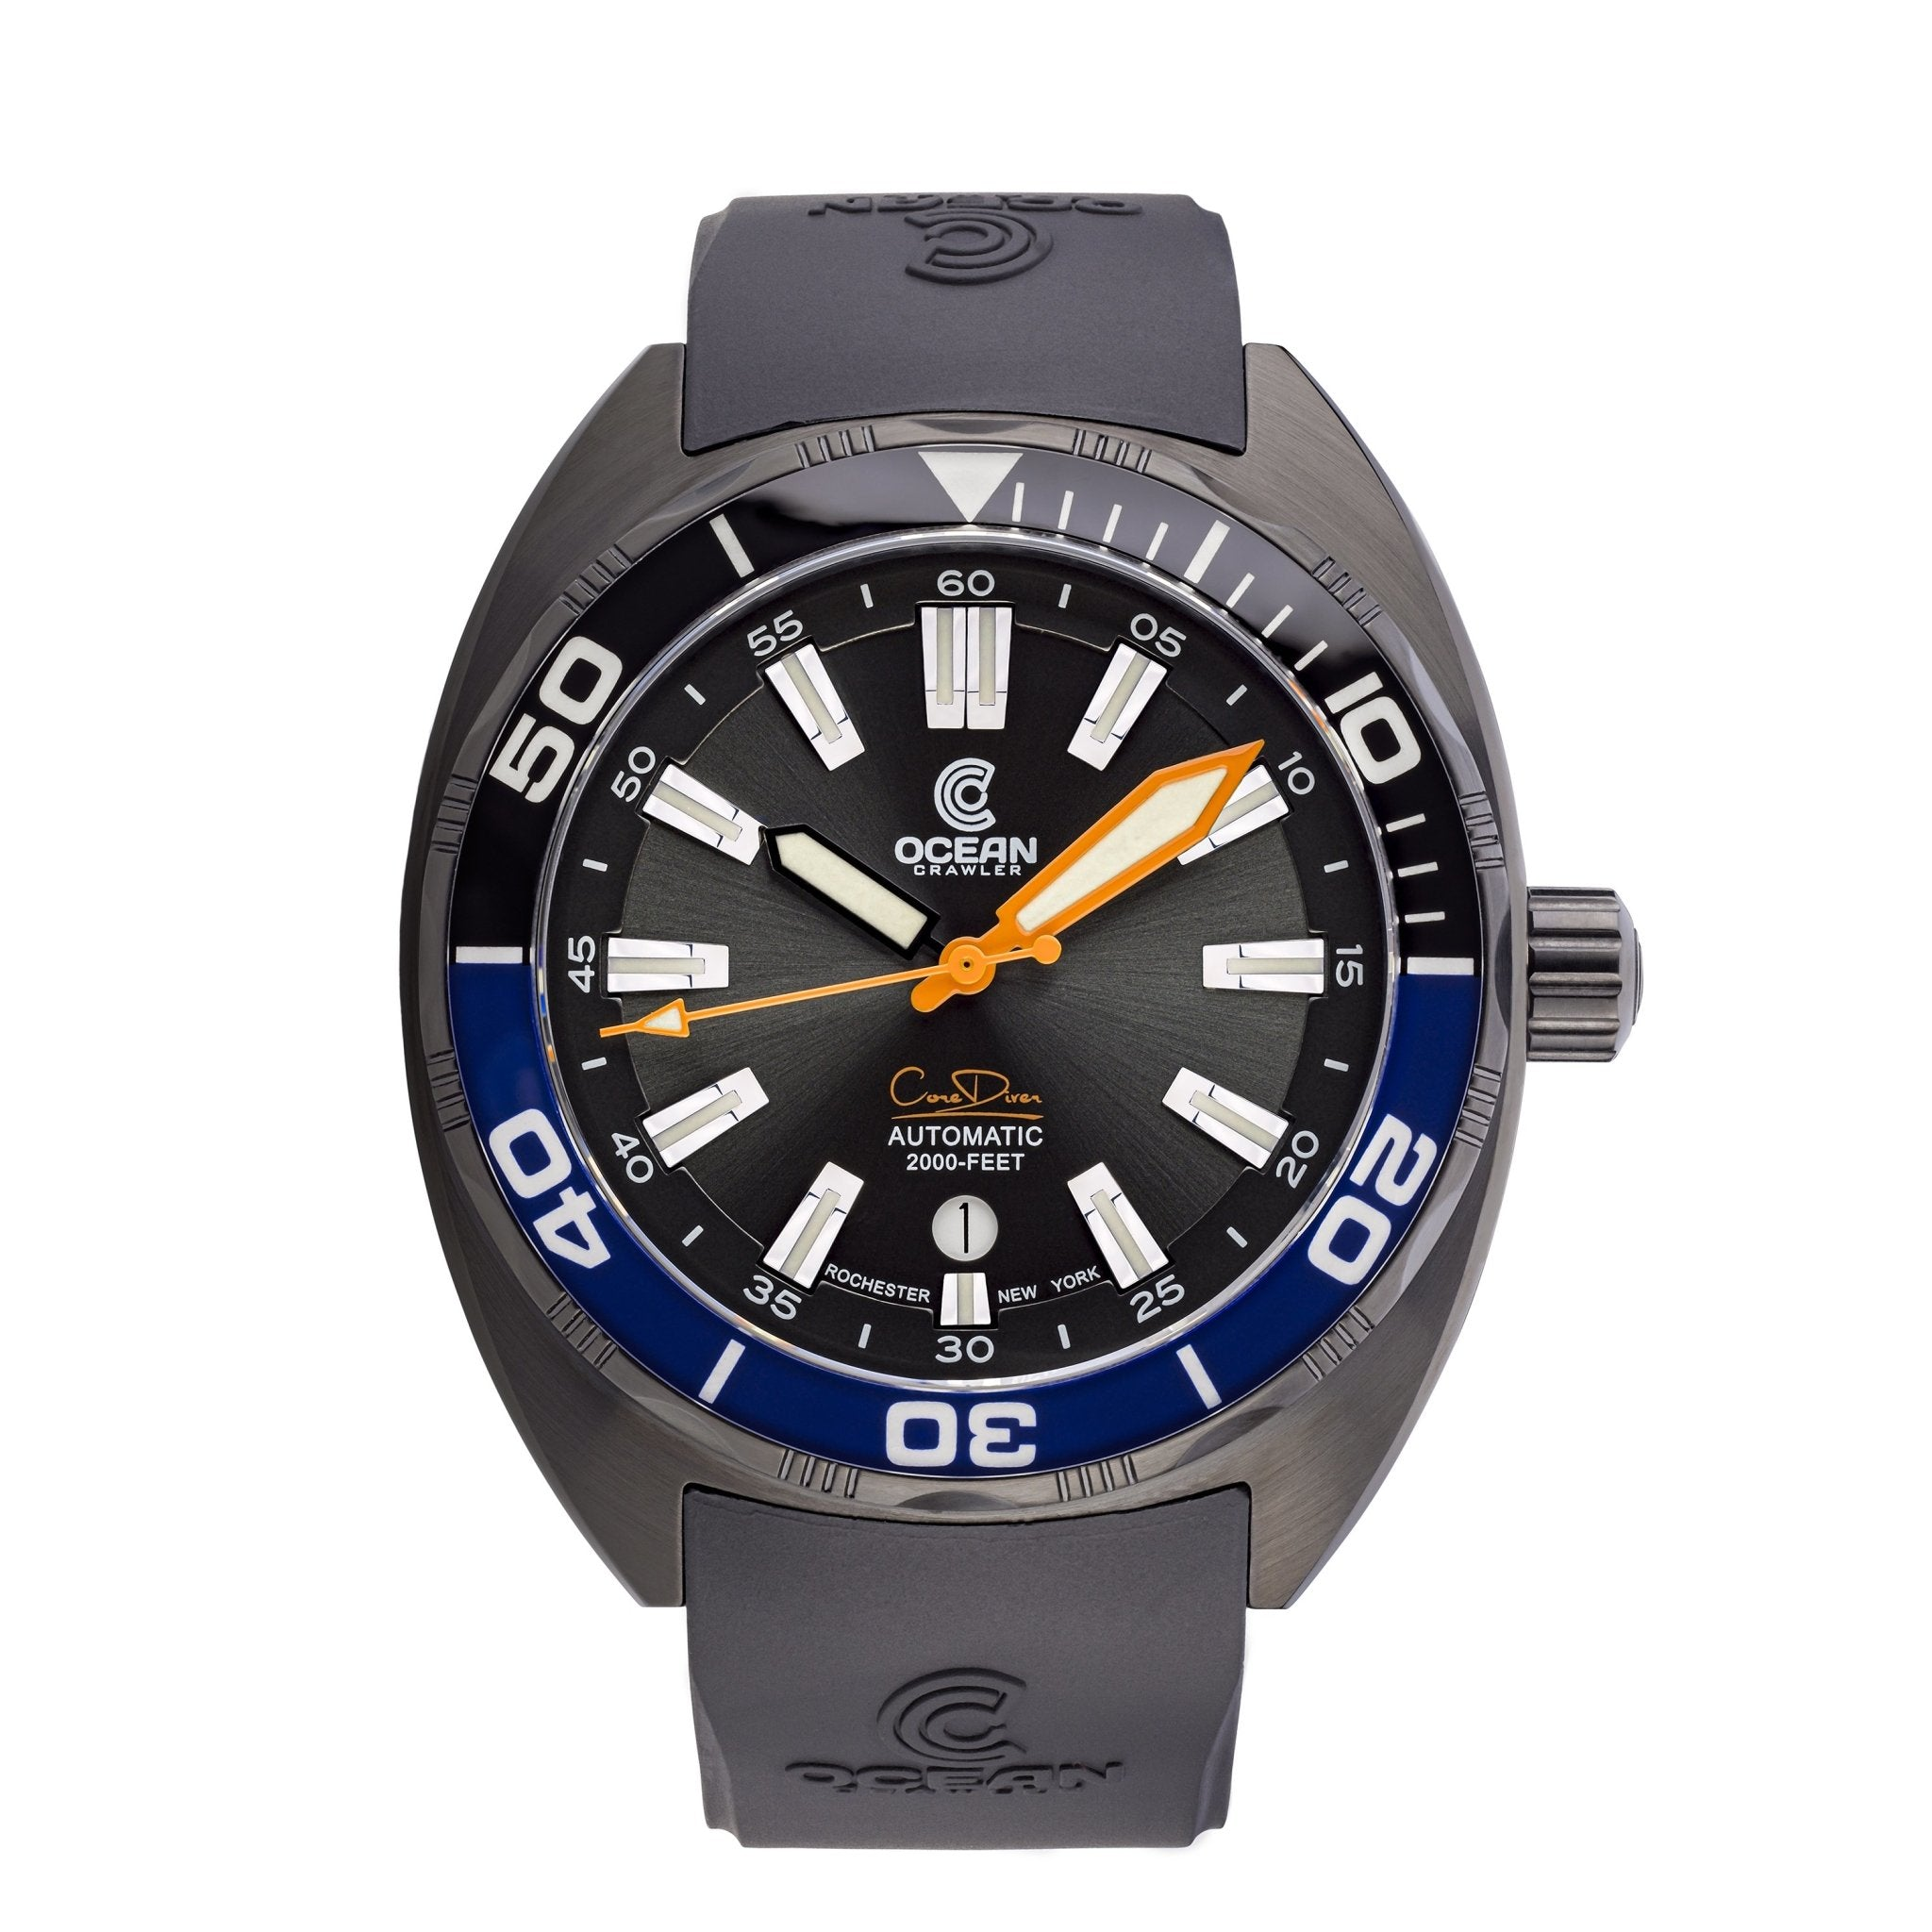 Ocean Crawler Core Diver - Black/Blue DLC - Preorder - Ocean Crawler Watch Co.